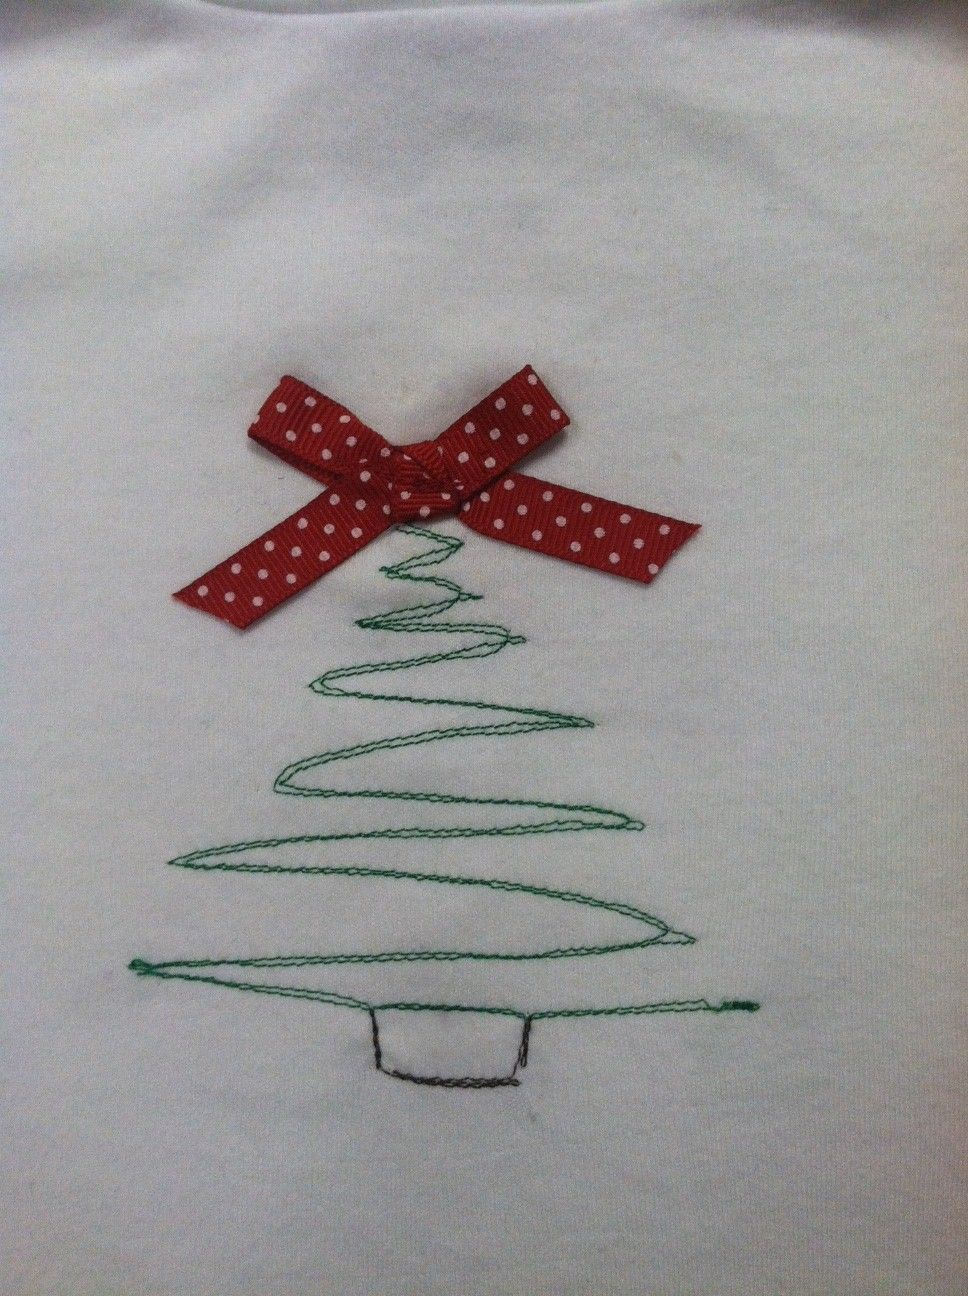 Sew a Simple Christmas Tree - Totally Stitchin